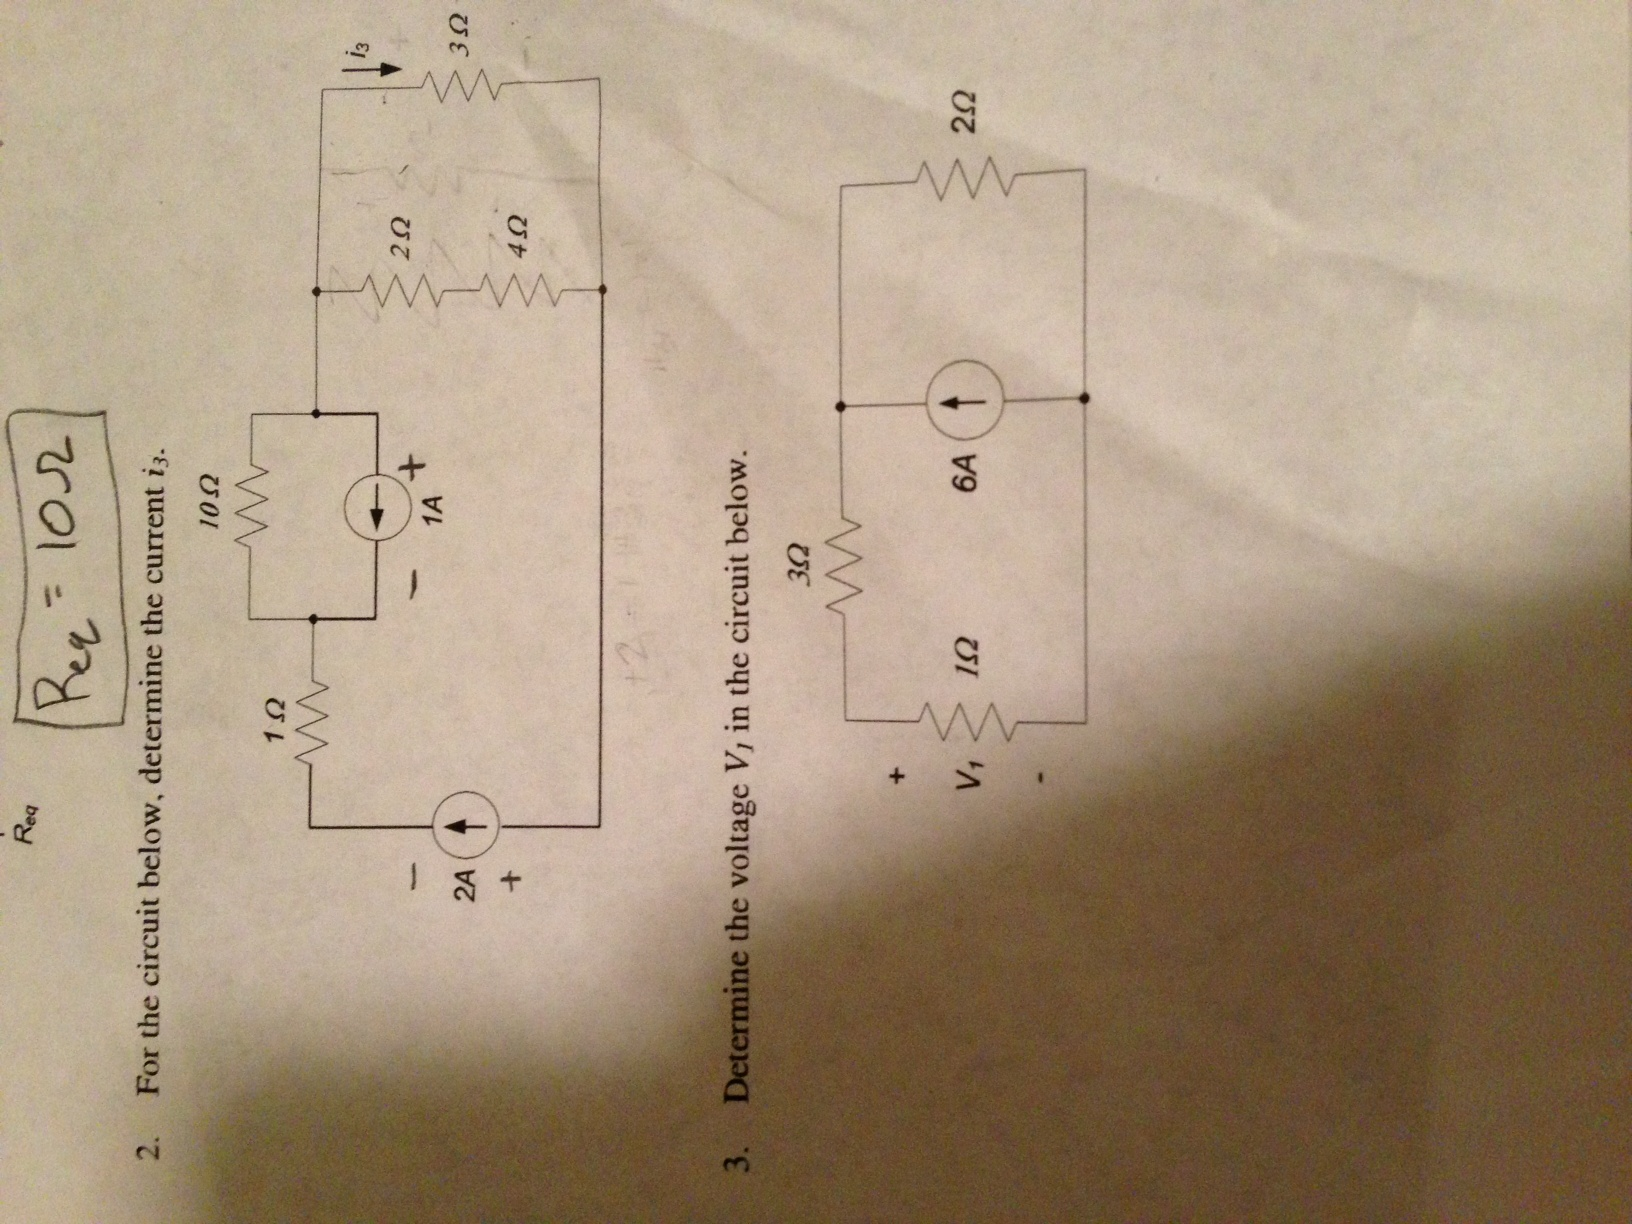 For the circuit below, determine the current i3.